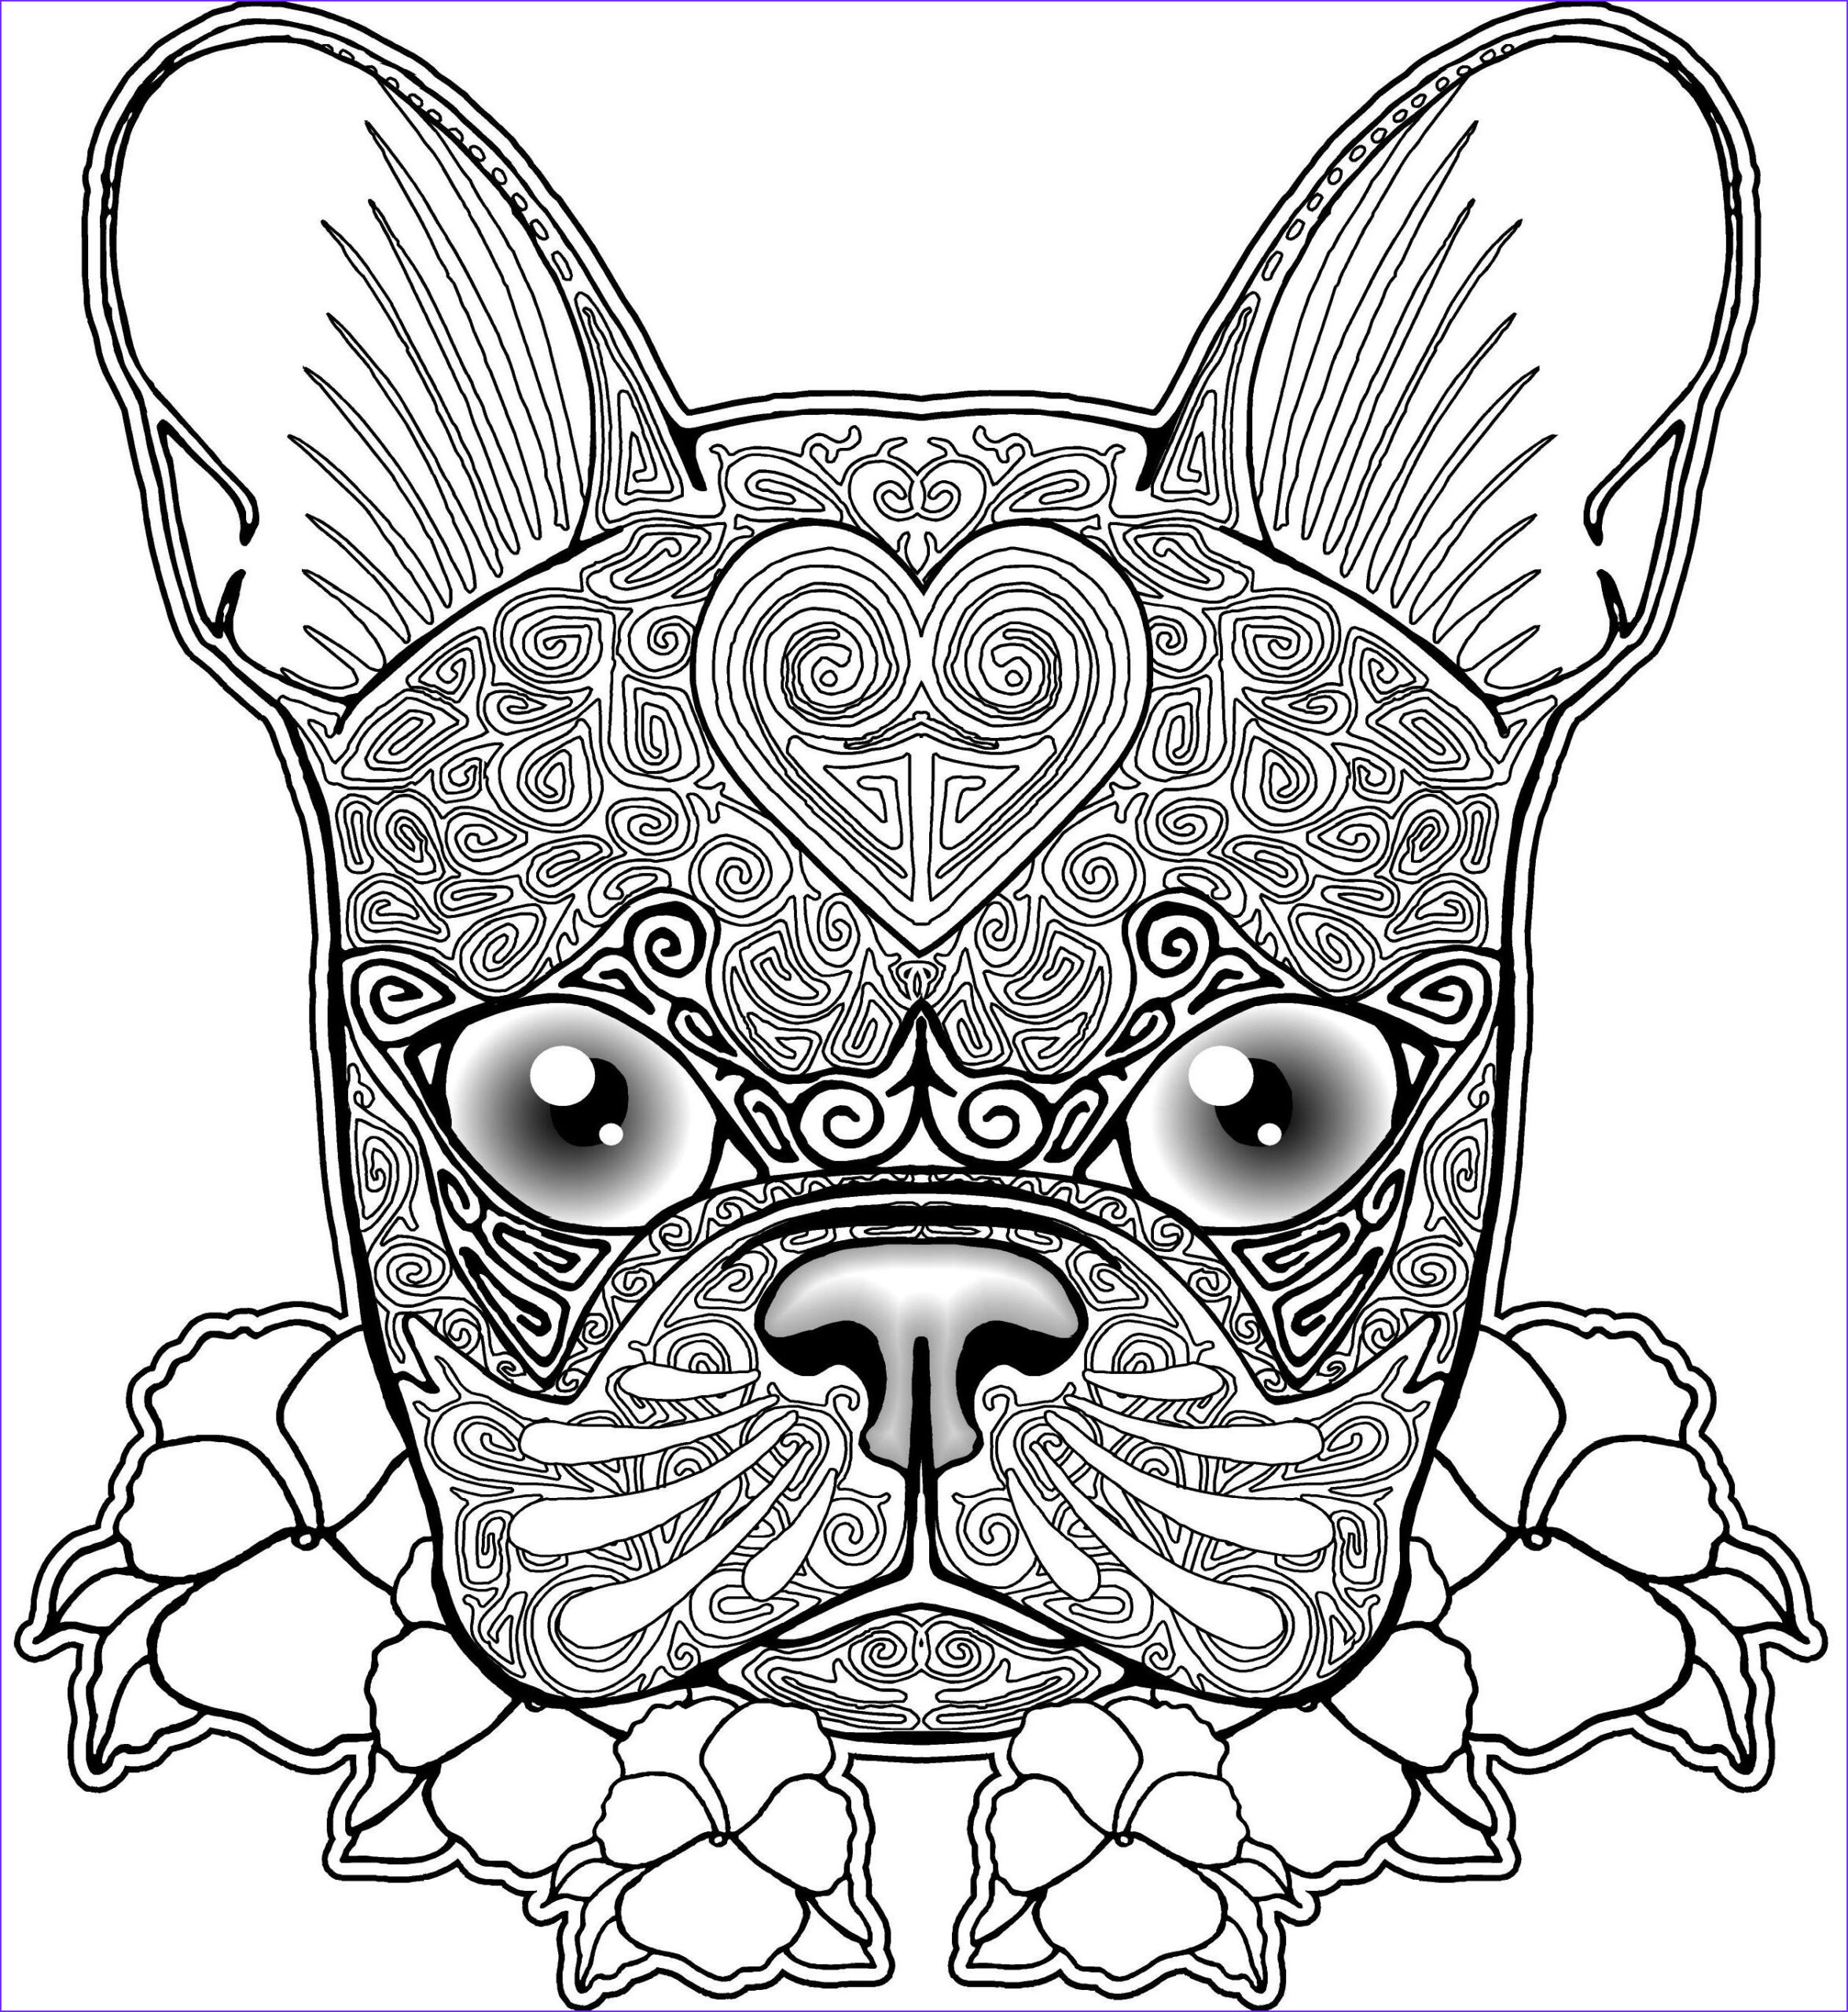 Dog Coloring Book for Adults Awesome Photos Pug Dog Coloring Pages Coloring Home